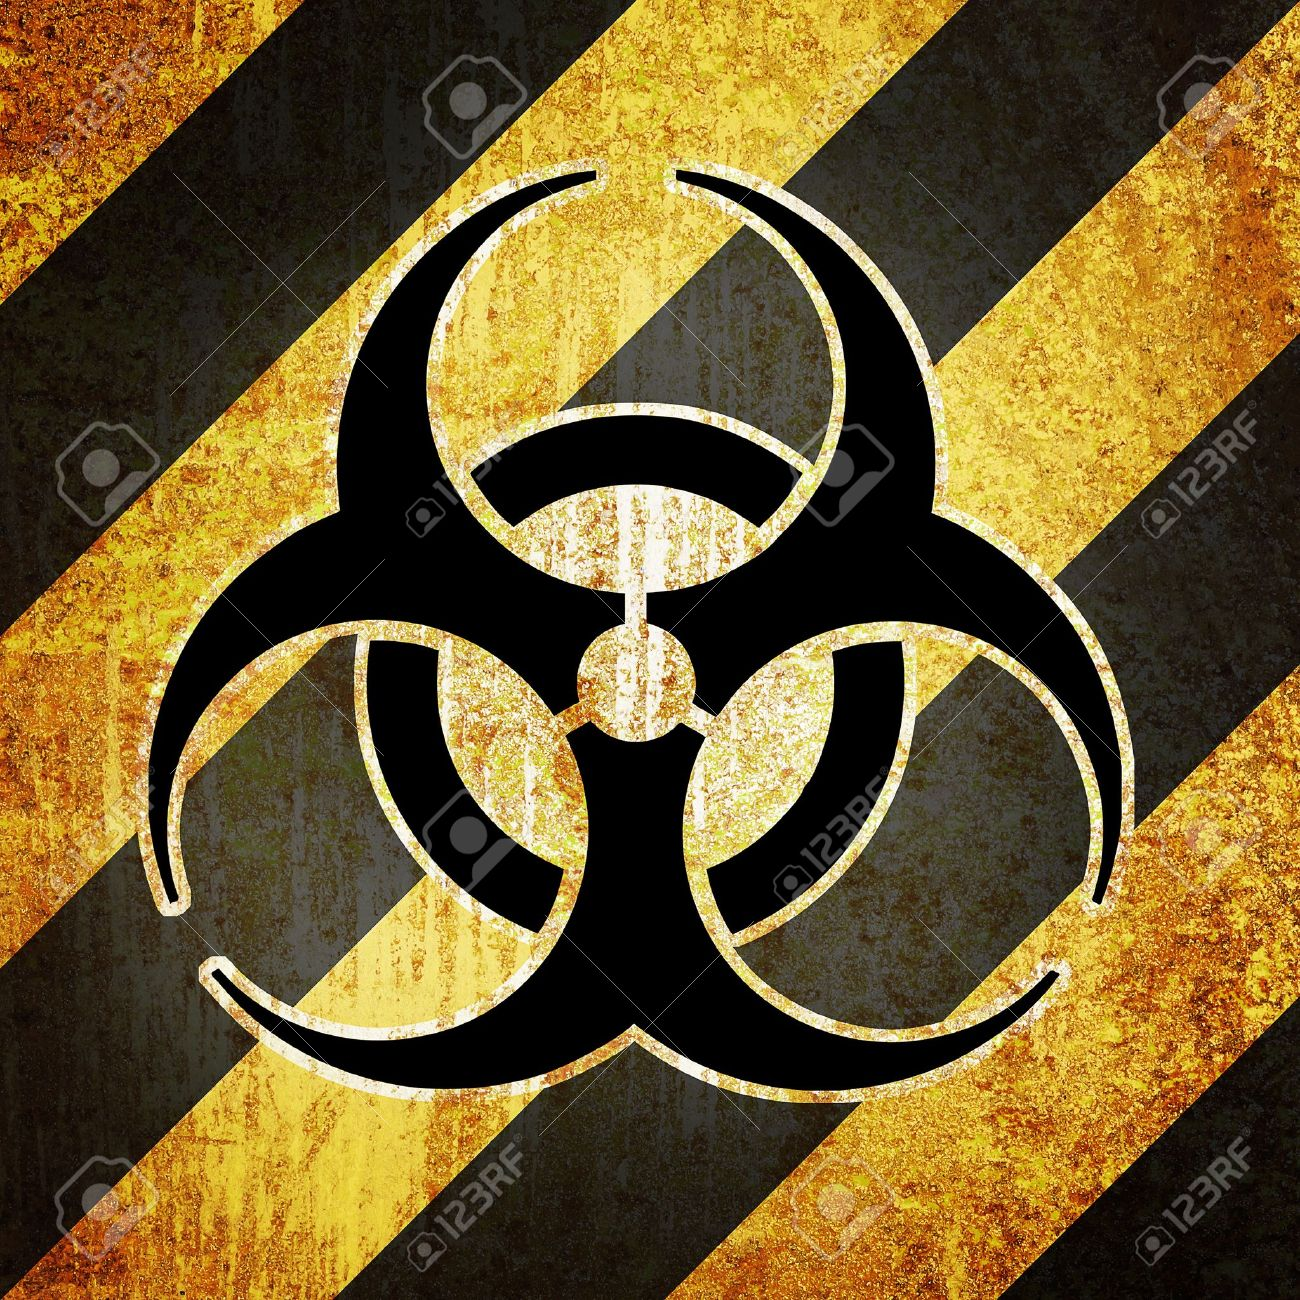 grunge retro vintage rusty old paper radiation nuke background Stock Photo - 9708593